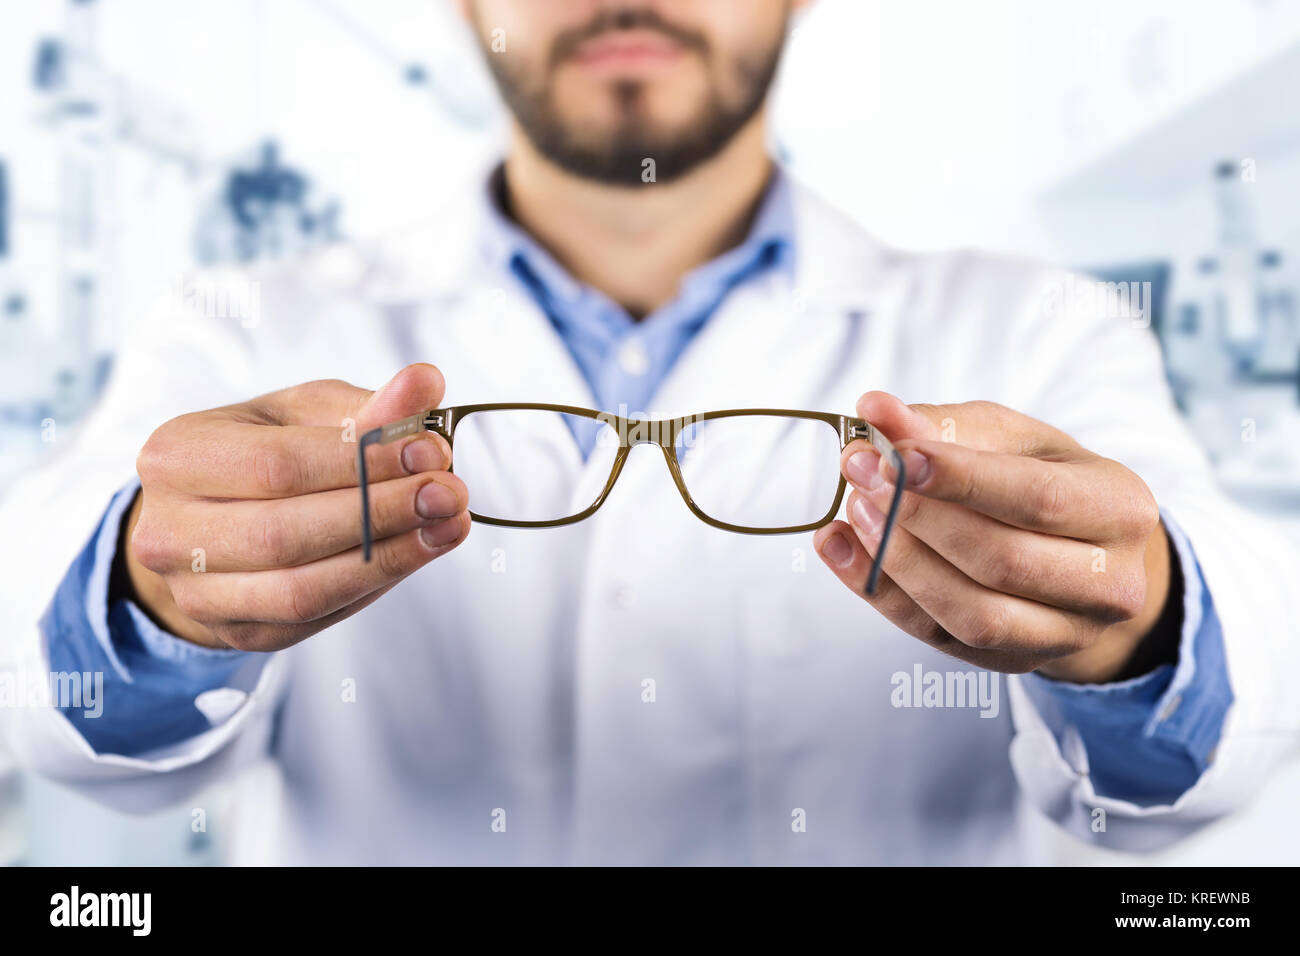 eyesight care concept - optician giving new optical glasses - Stock Image